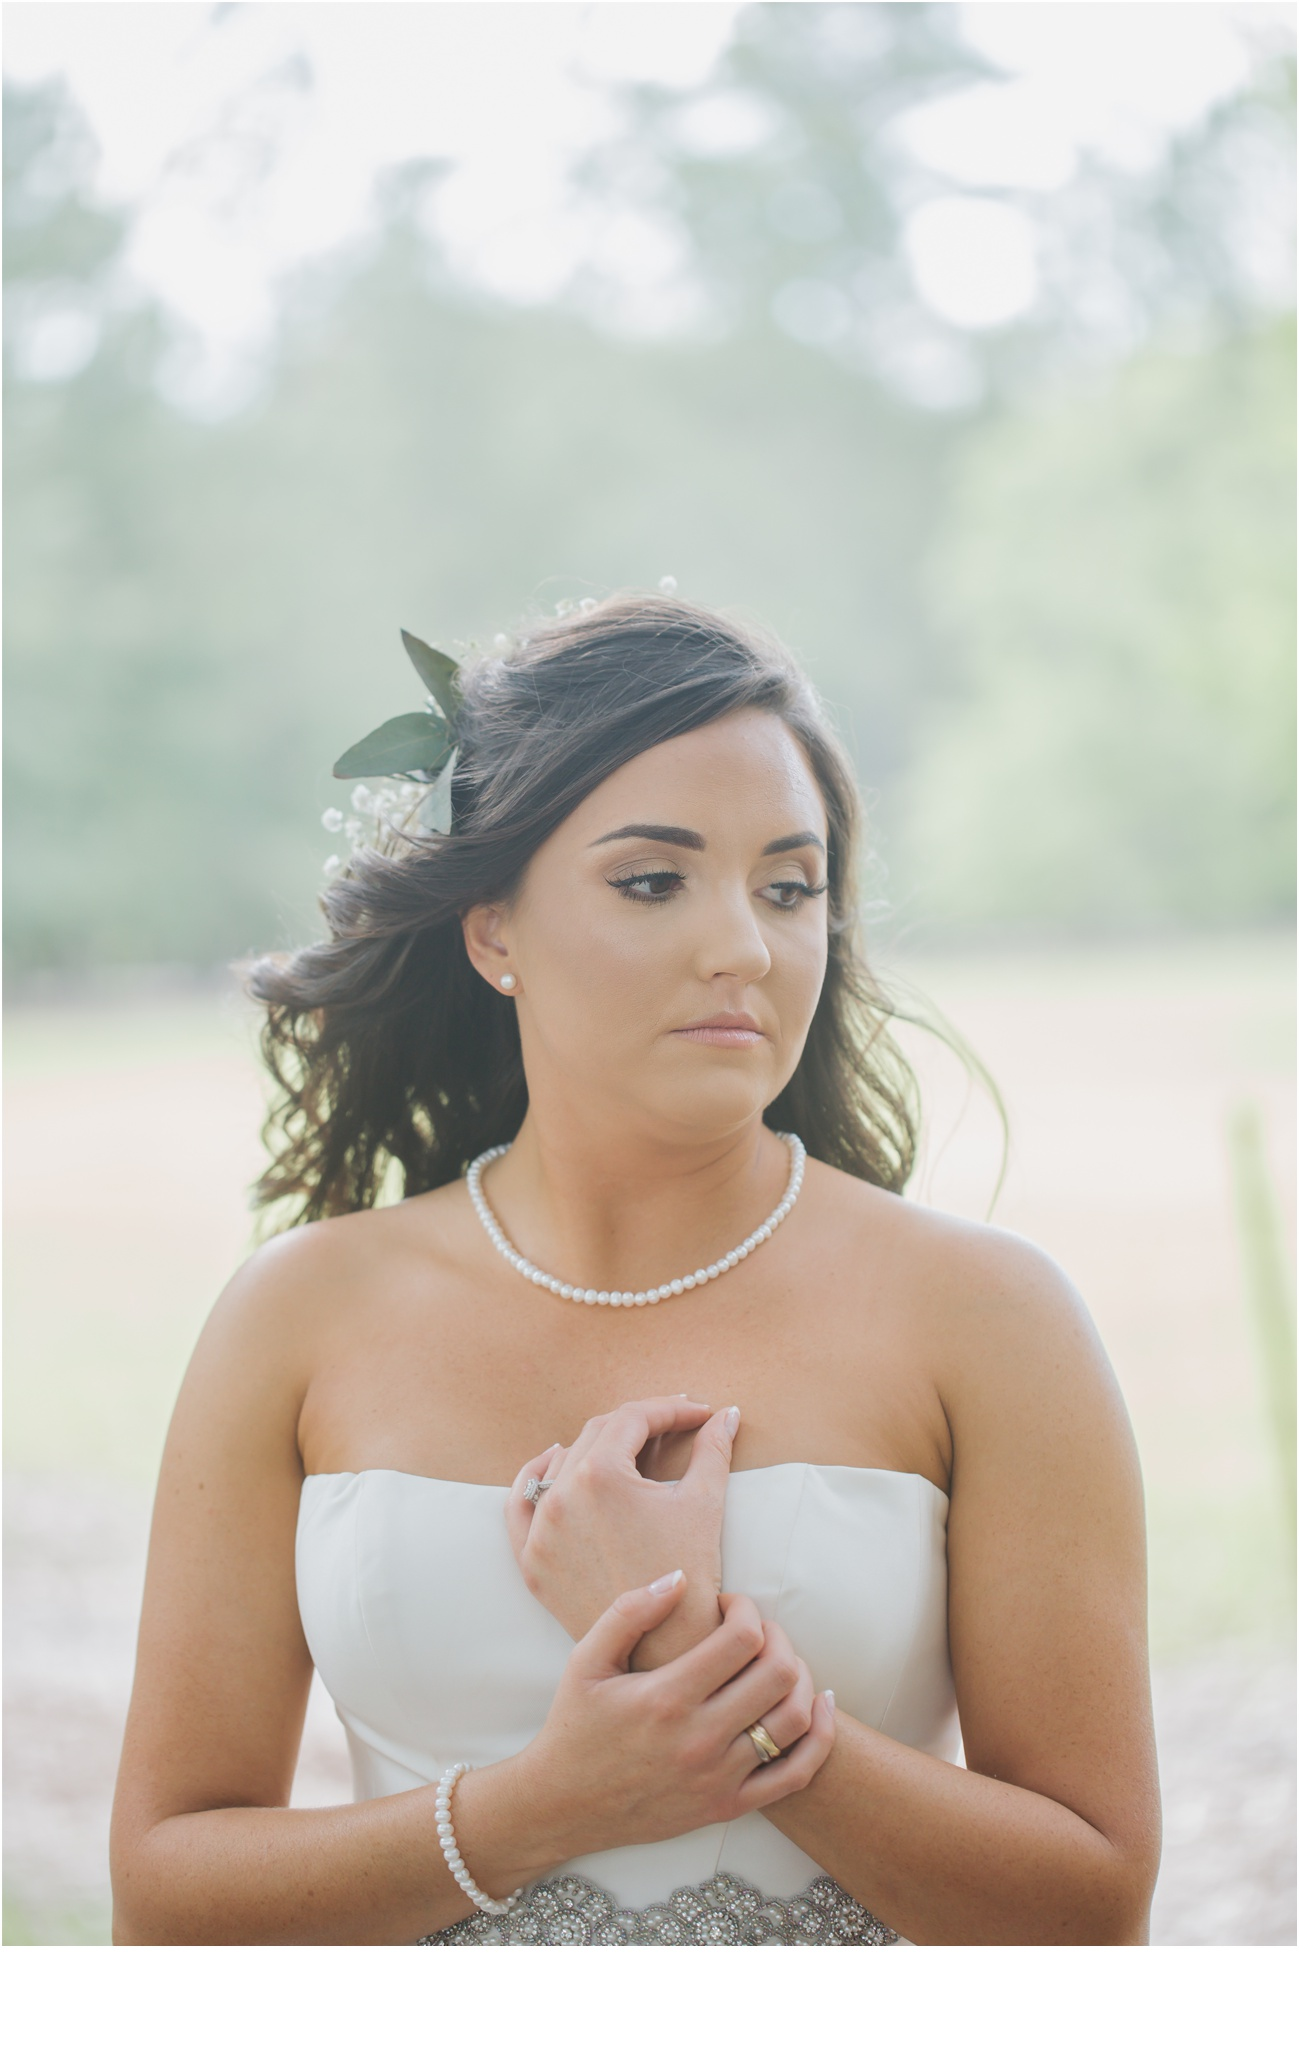 Rainey_Gregg_Photography_St._Simons_Island_Georgia_California_Wedding_Portrait_Photography_0916.jpg